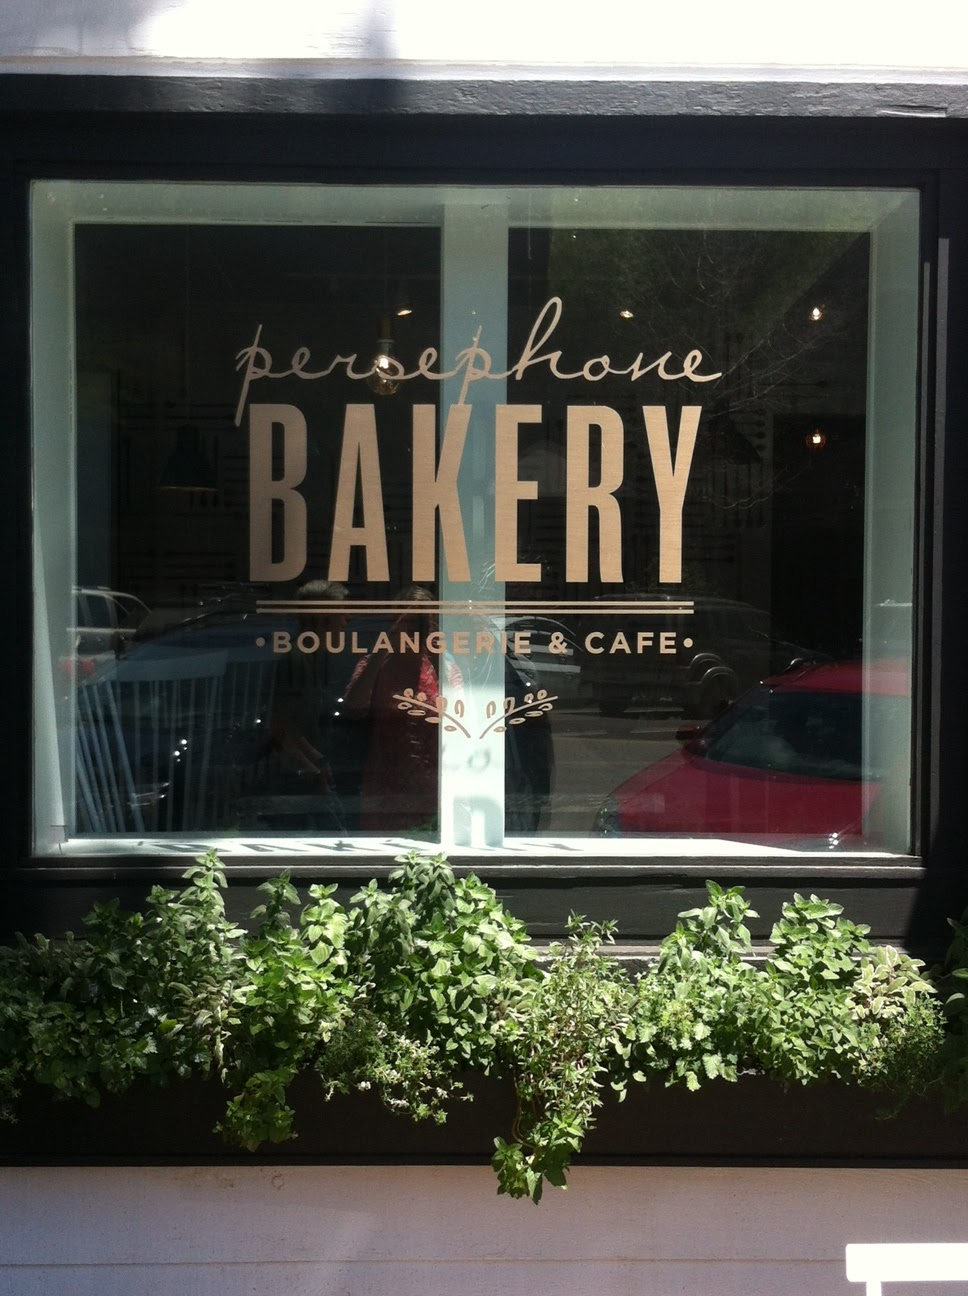 Delight by design new kid on the block persephone bakery for Restaurant window design